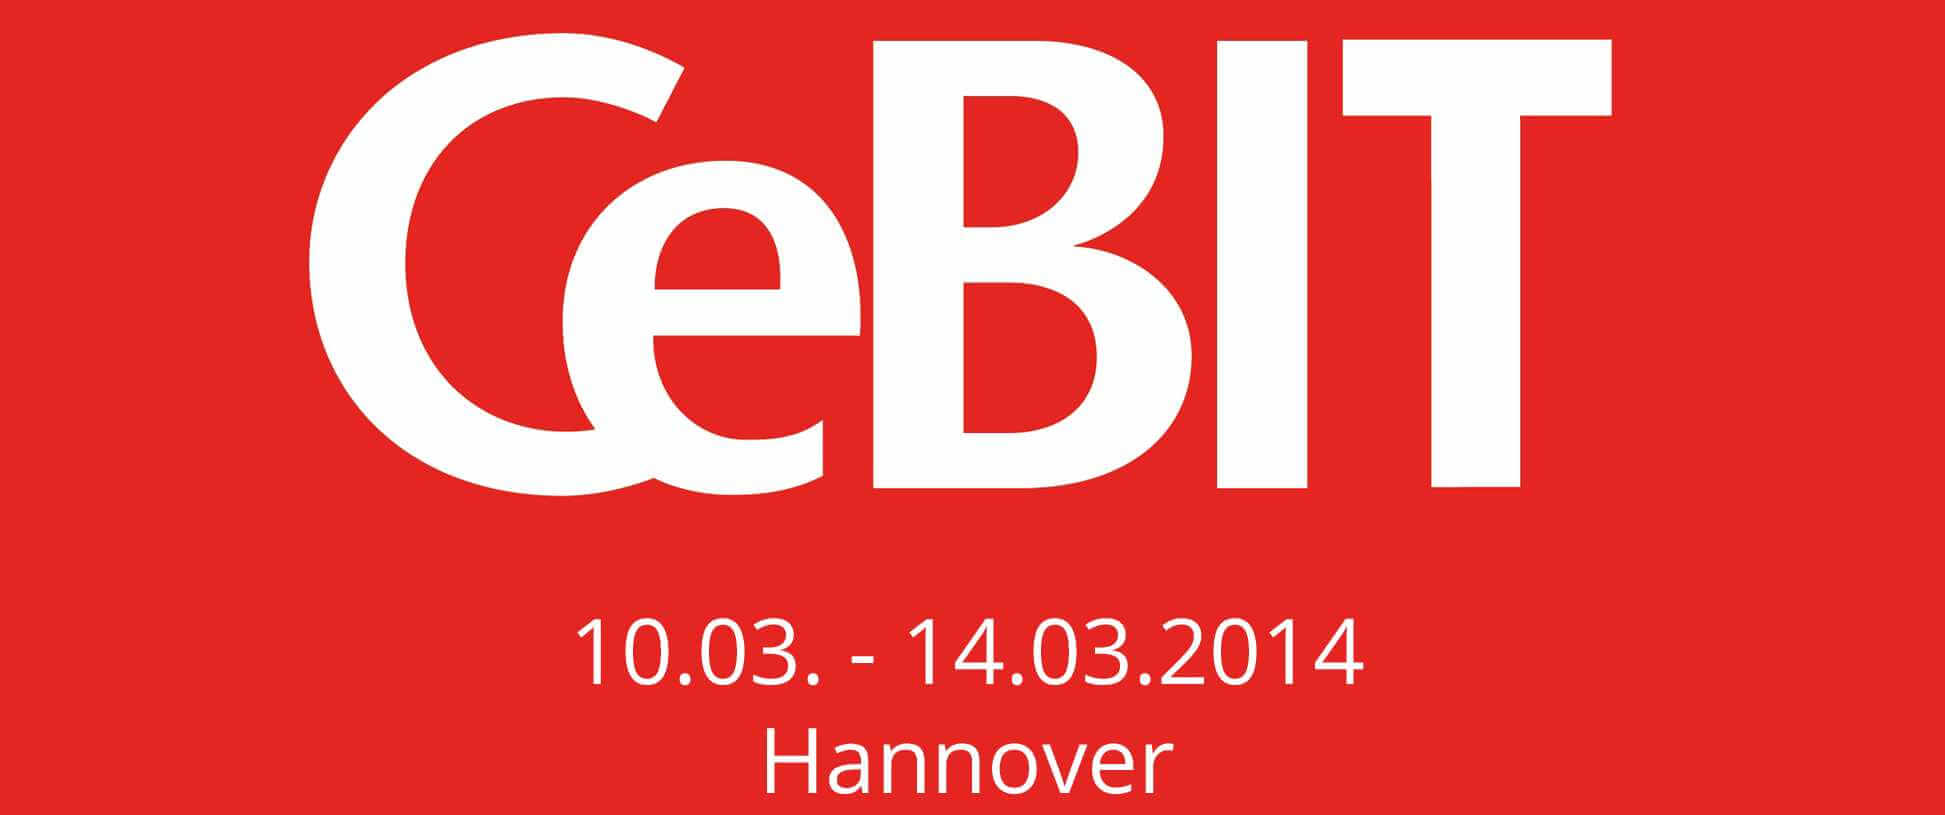 CeBIT, Hannover